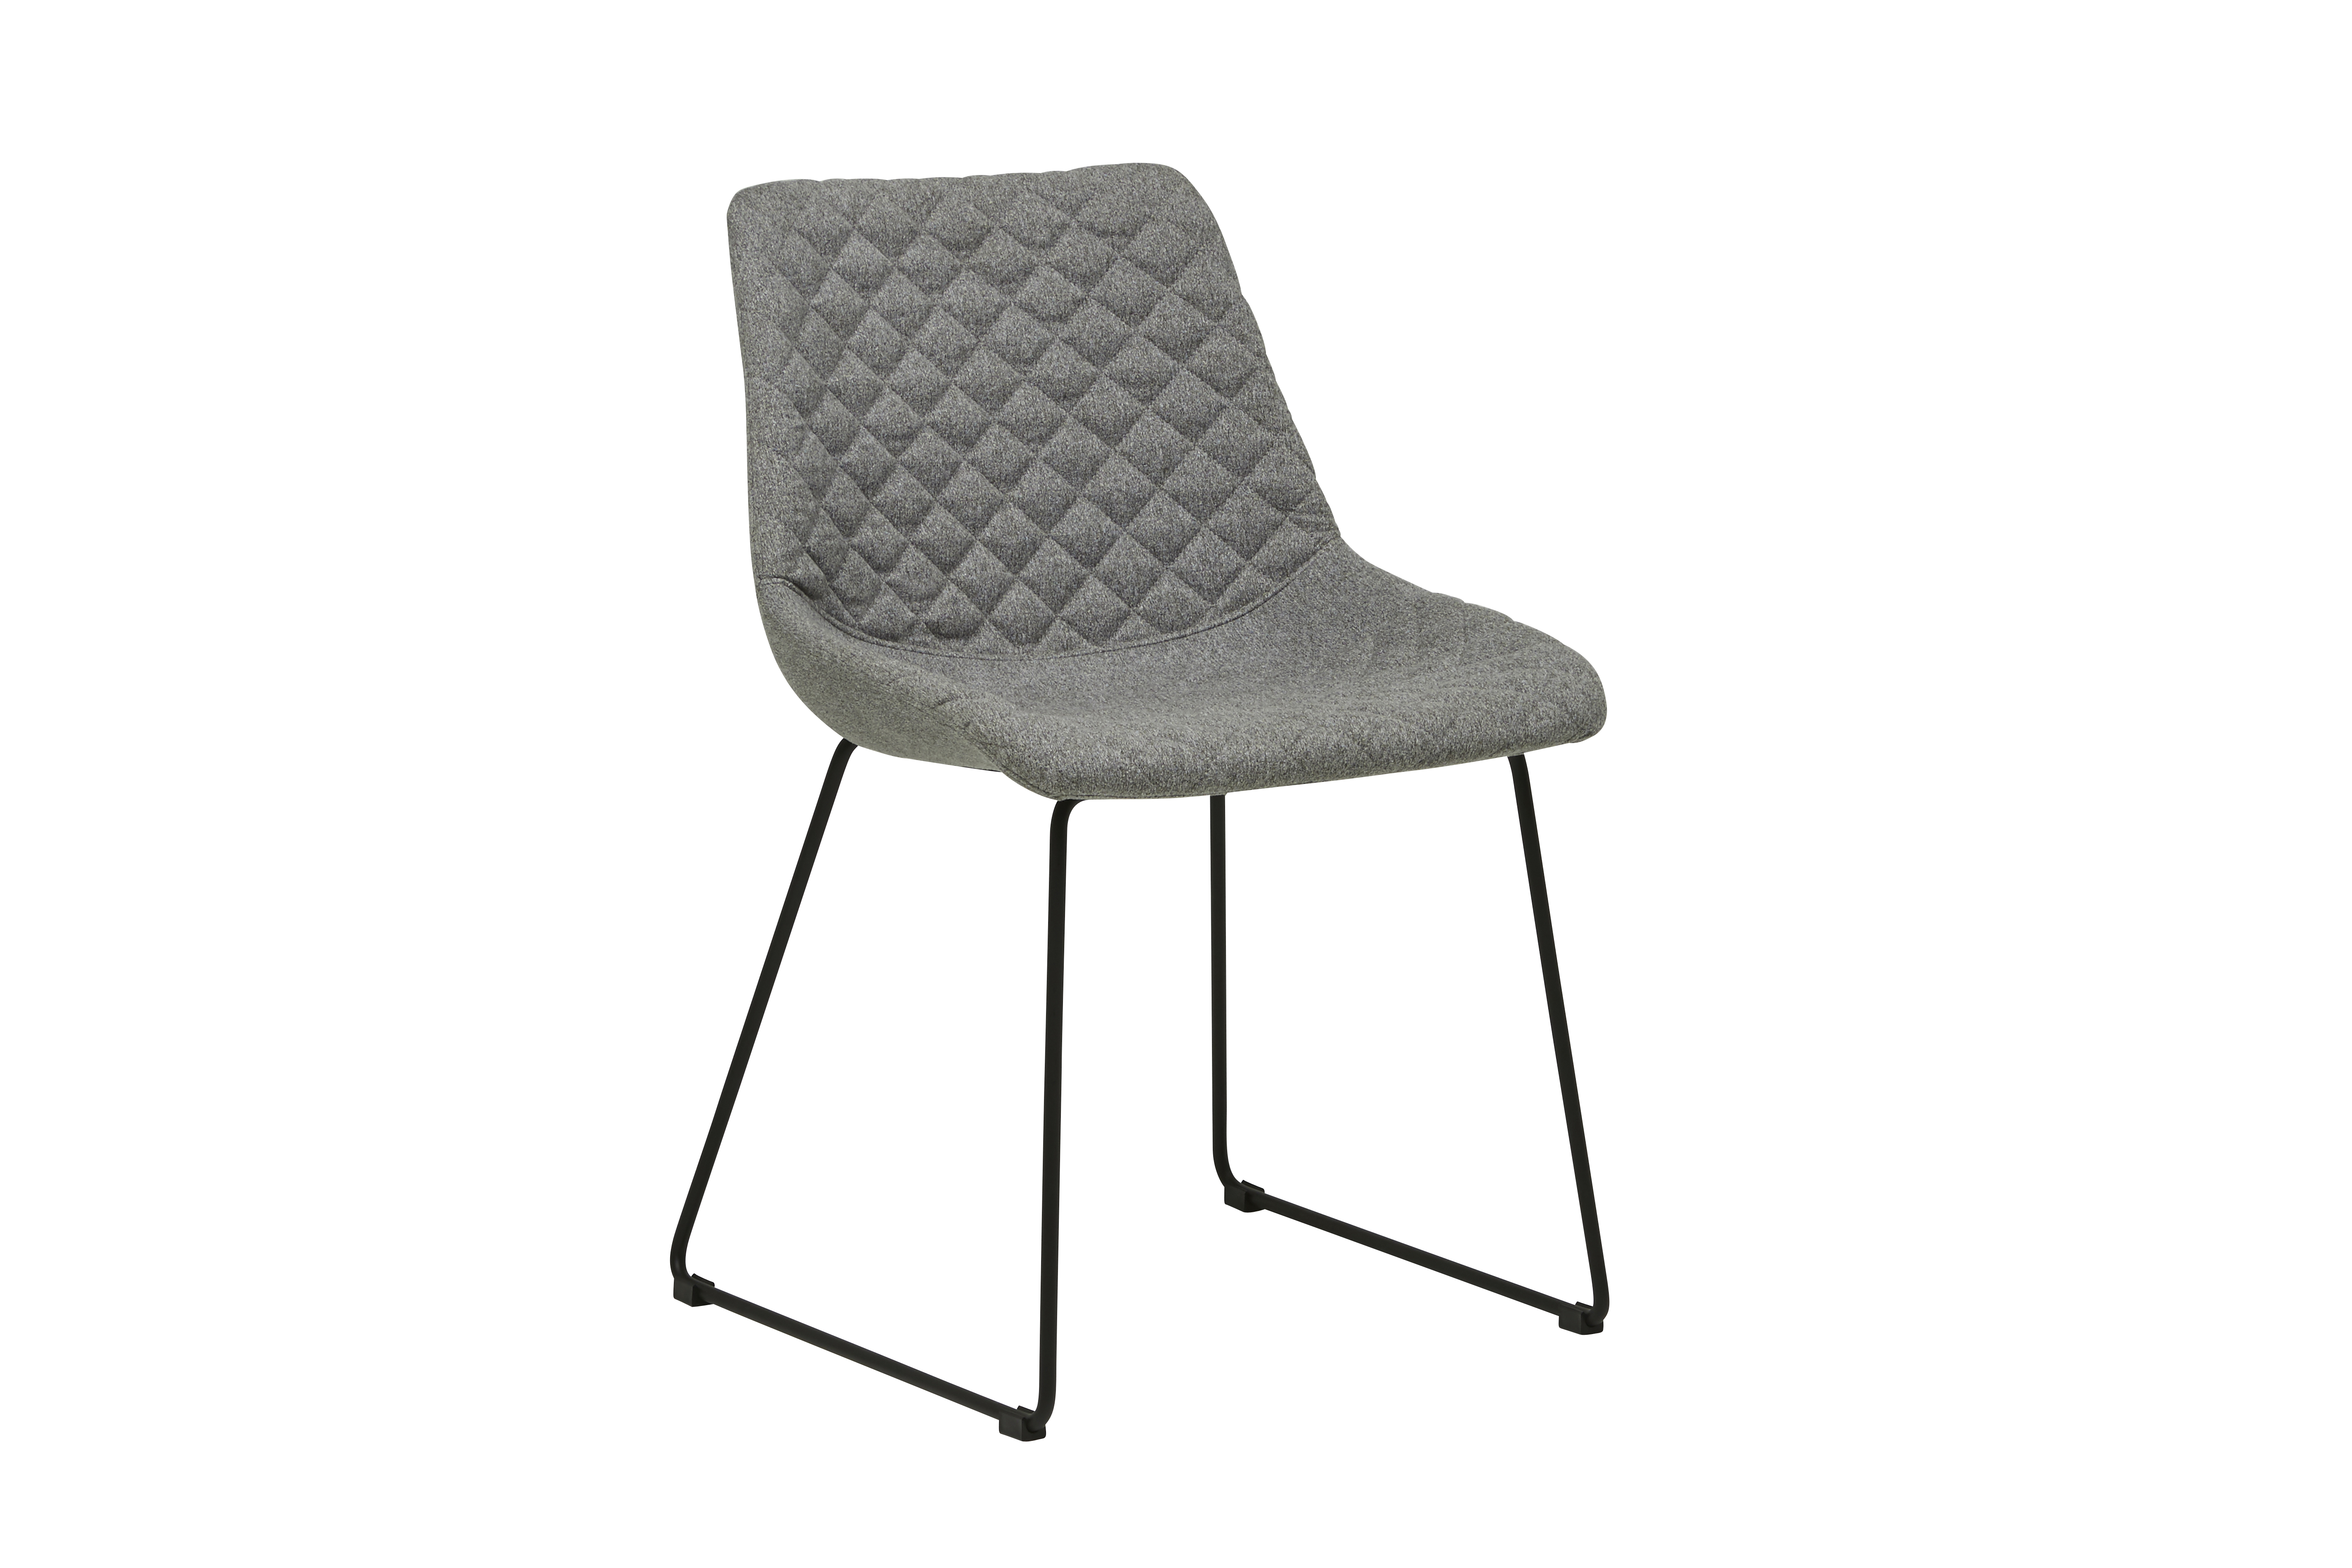 light grey chair dining chairs on wheels henri partridgedesign